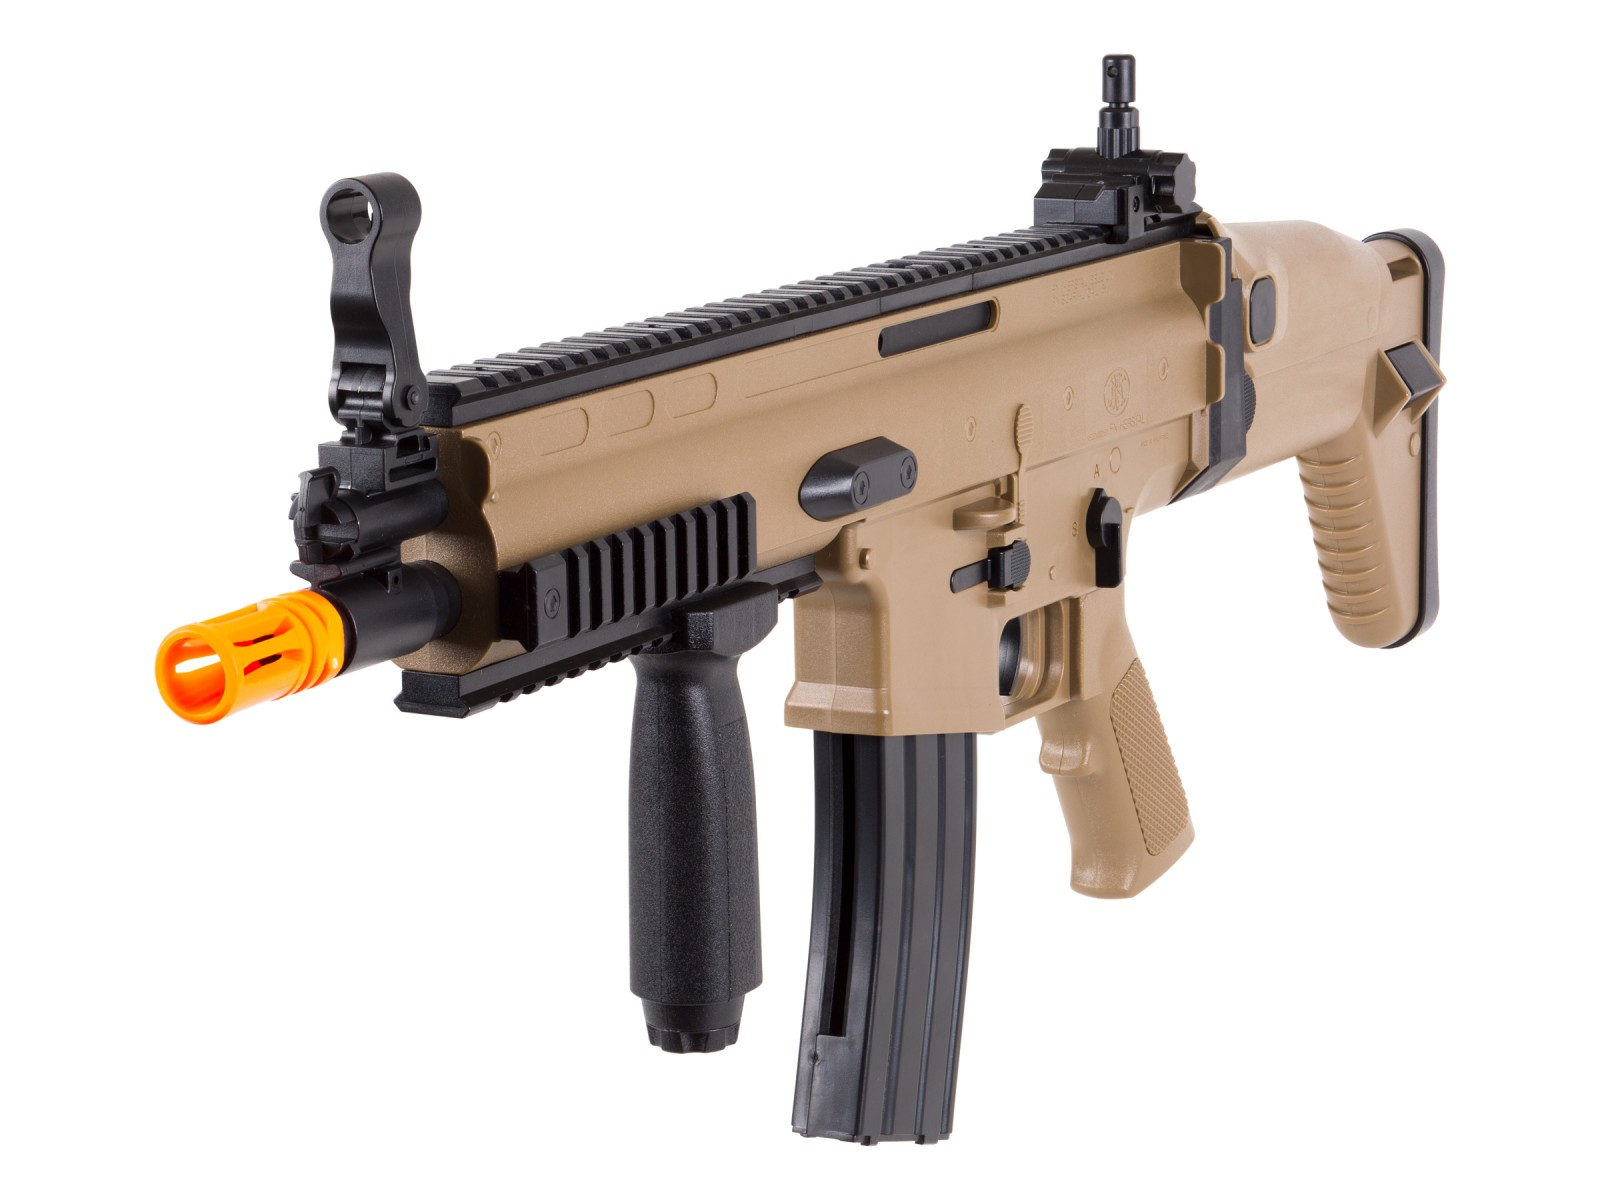 Swiss Arms FN Herstal SCAR-L Spring Airsoft Rifle, Tan ...